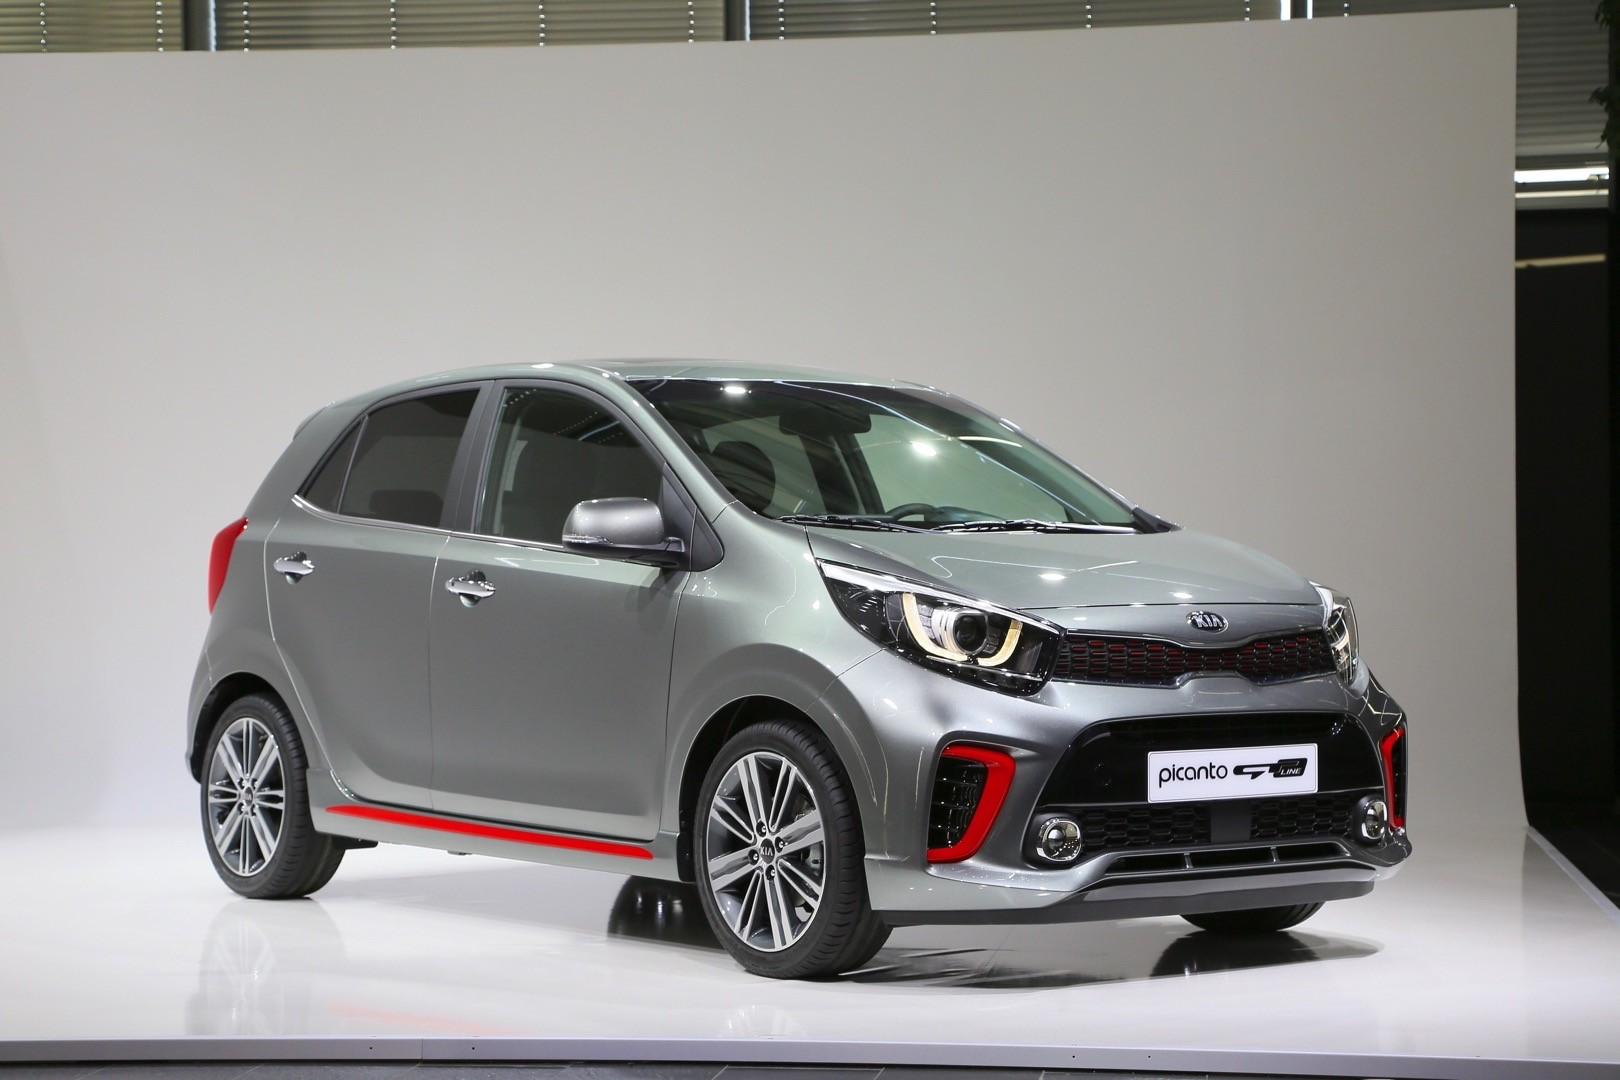 2017 Kia Picanto Specifications Revealed 10 T GDI Engine